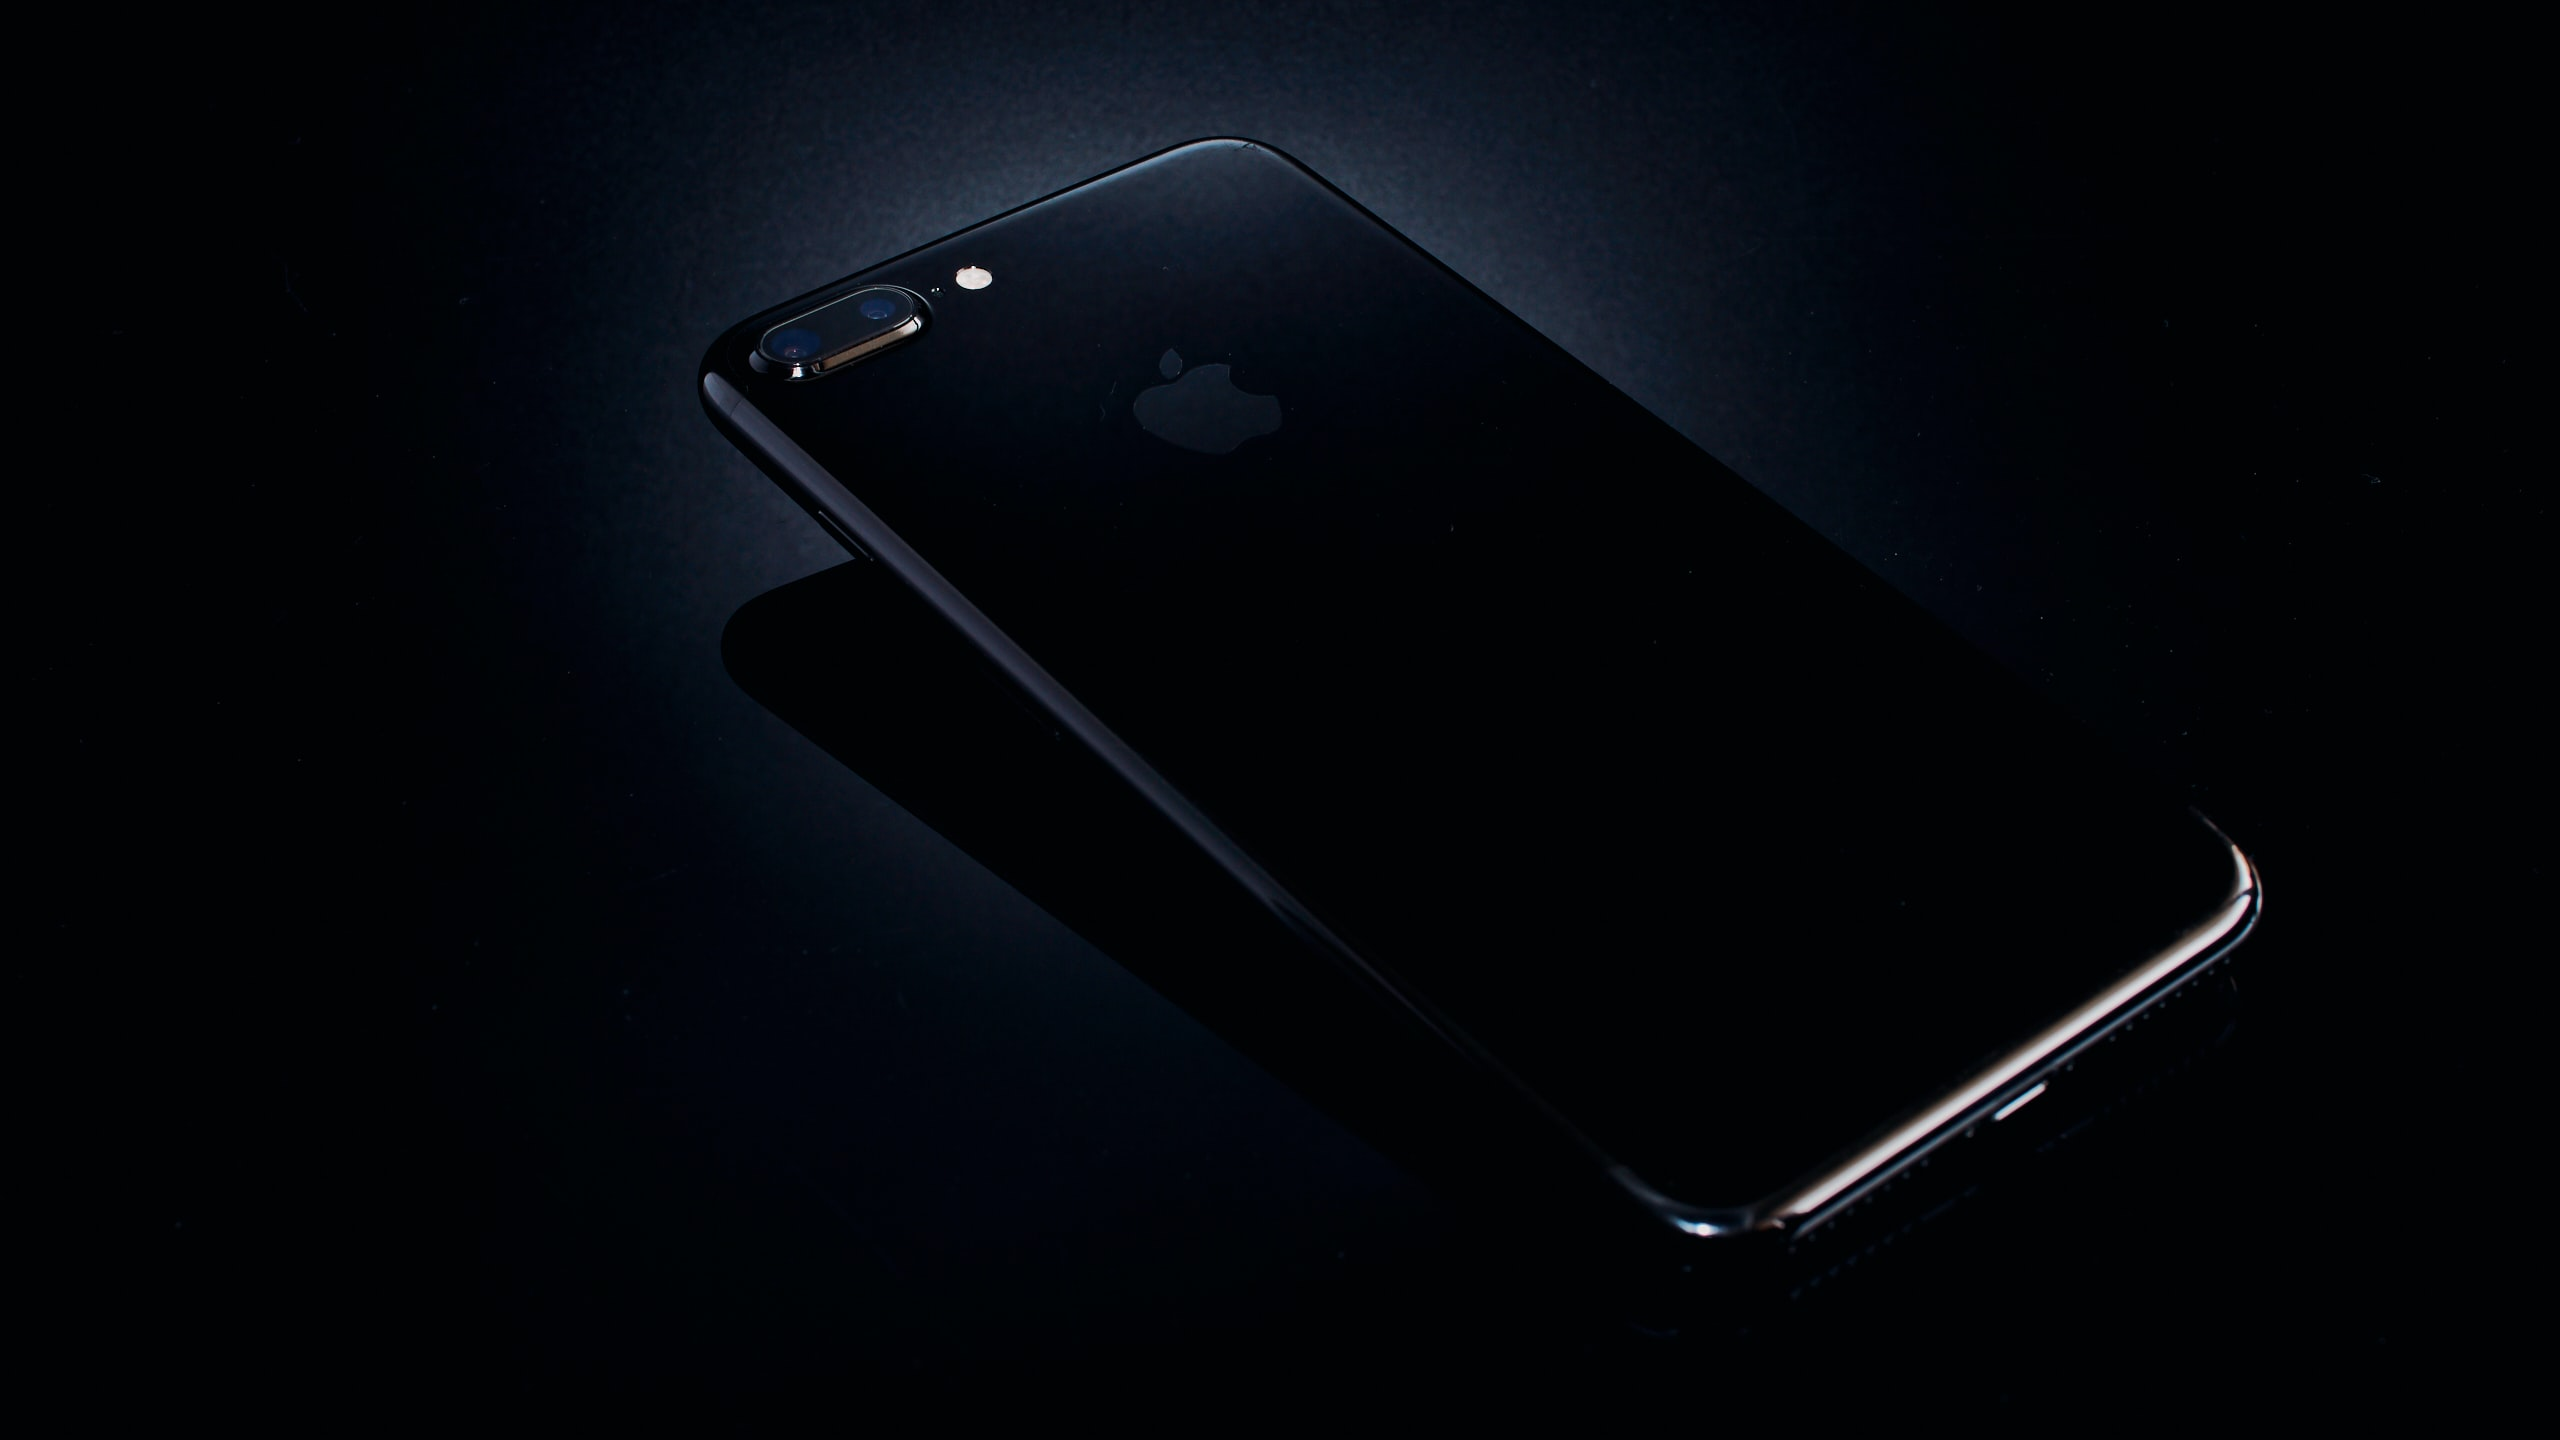 photo of black iPhone 8 Plus